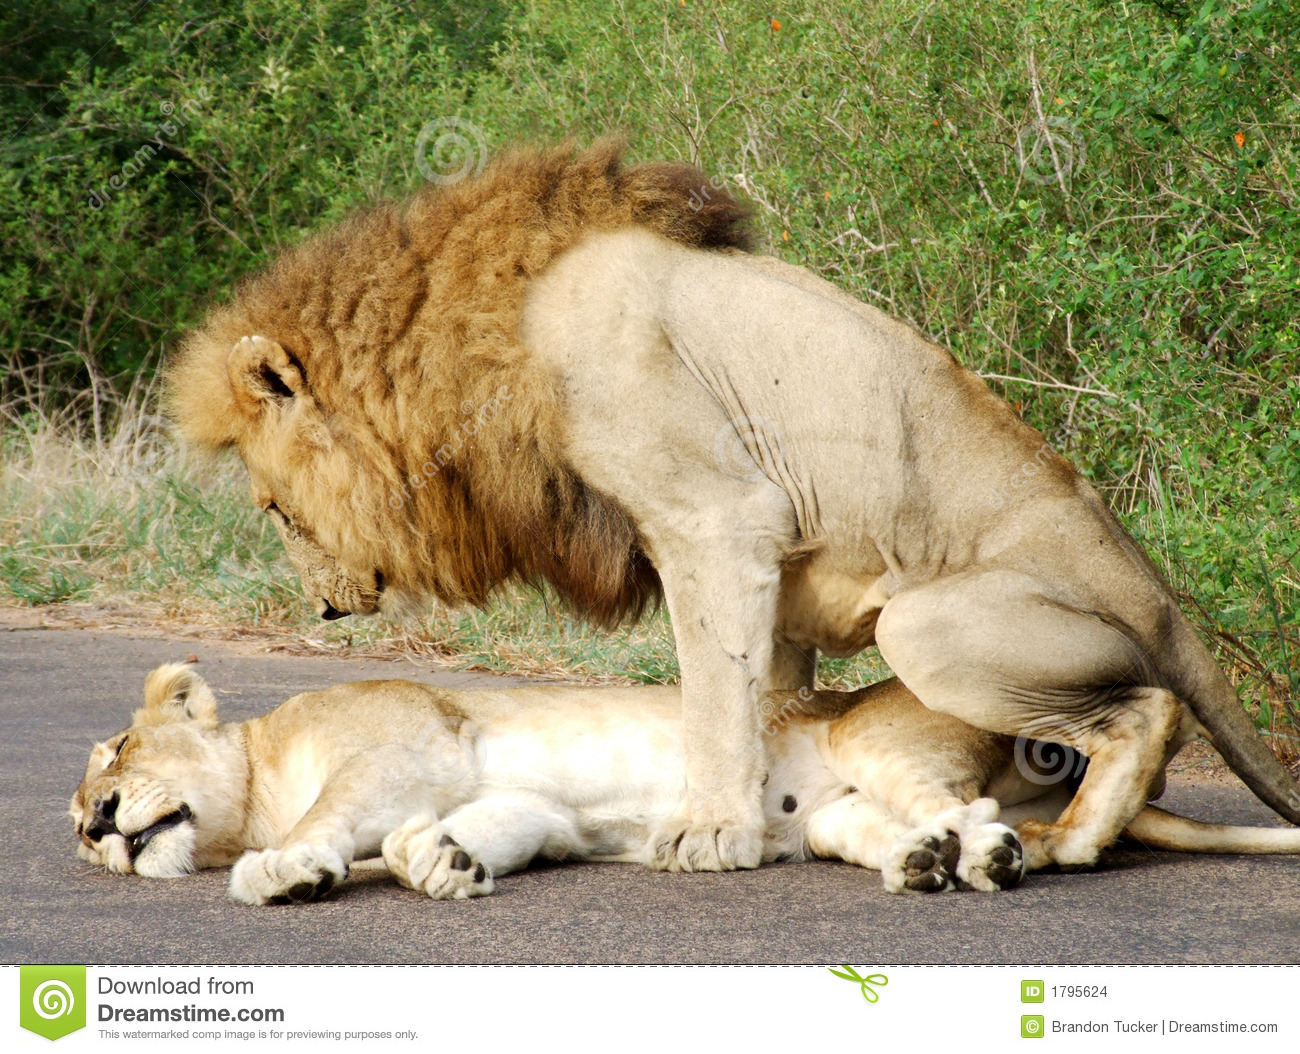 Two Lions Mating In Africa Stock Images - Image: 1795624